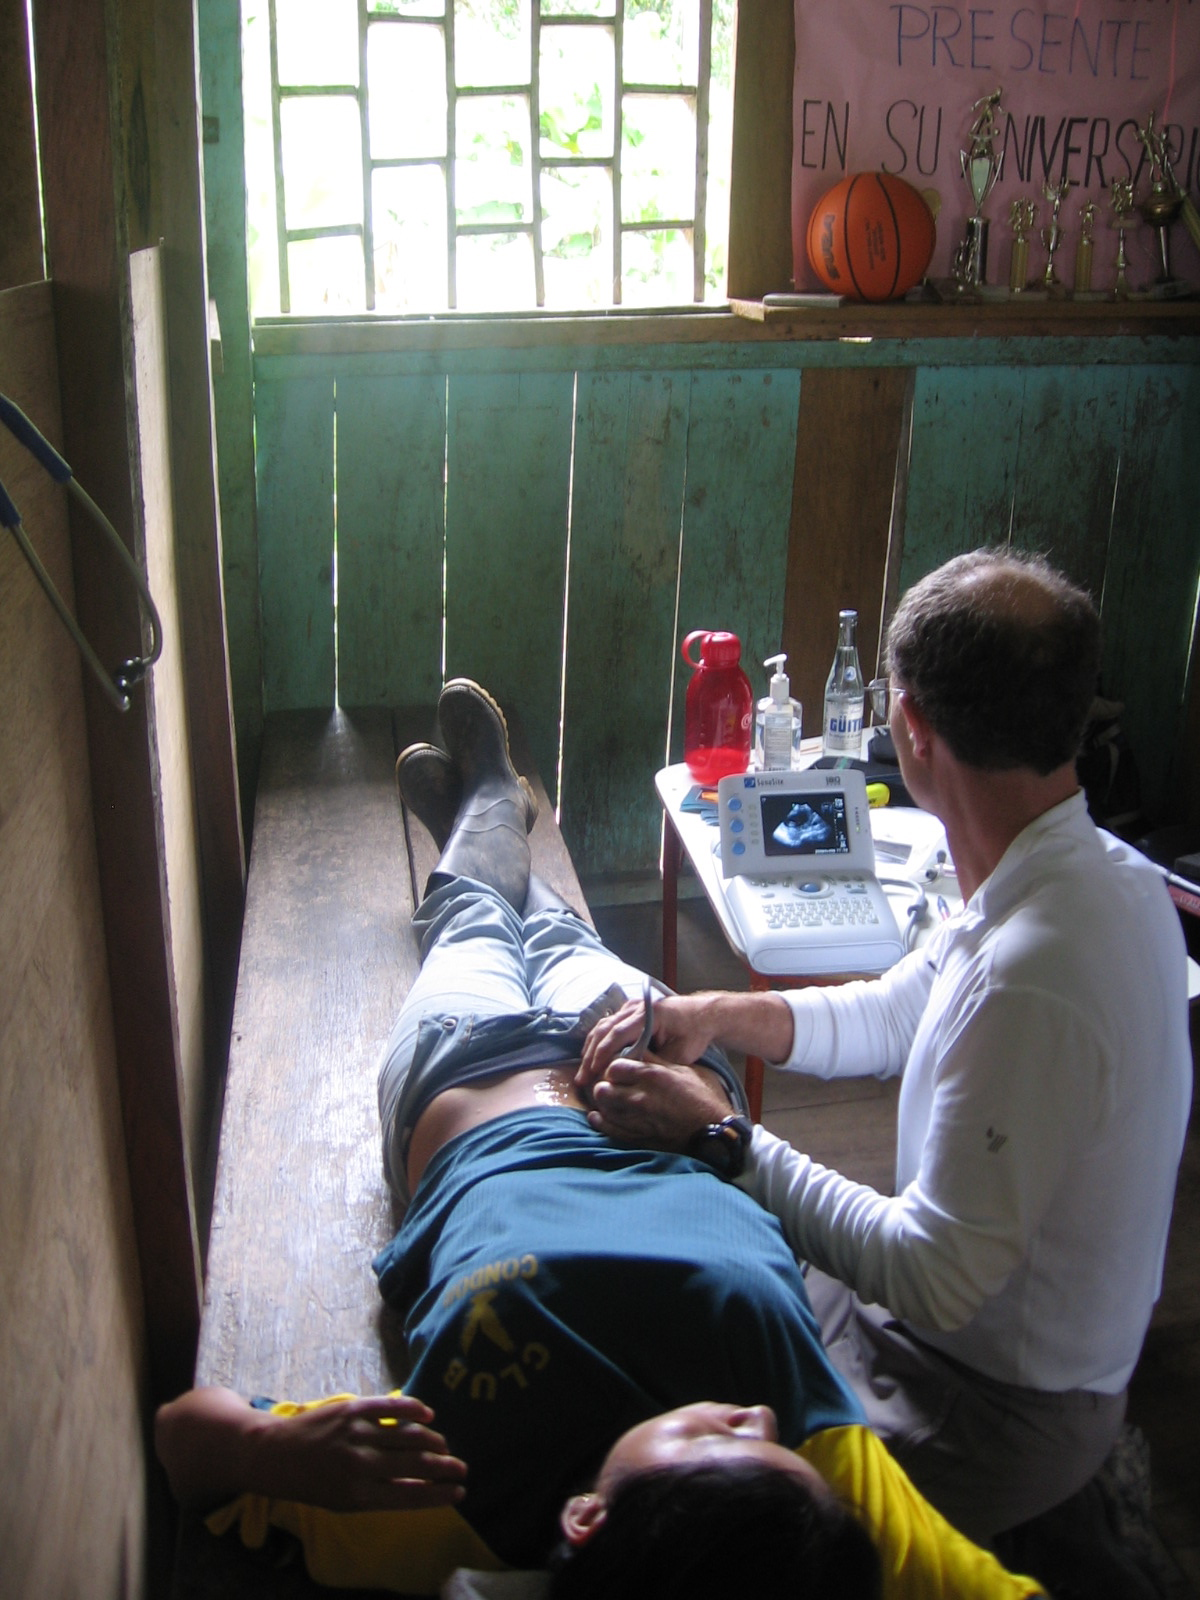 Dr Hansen came to Gualaquiza to help provide much need medical attention